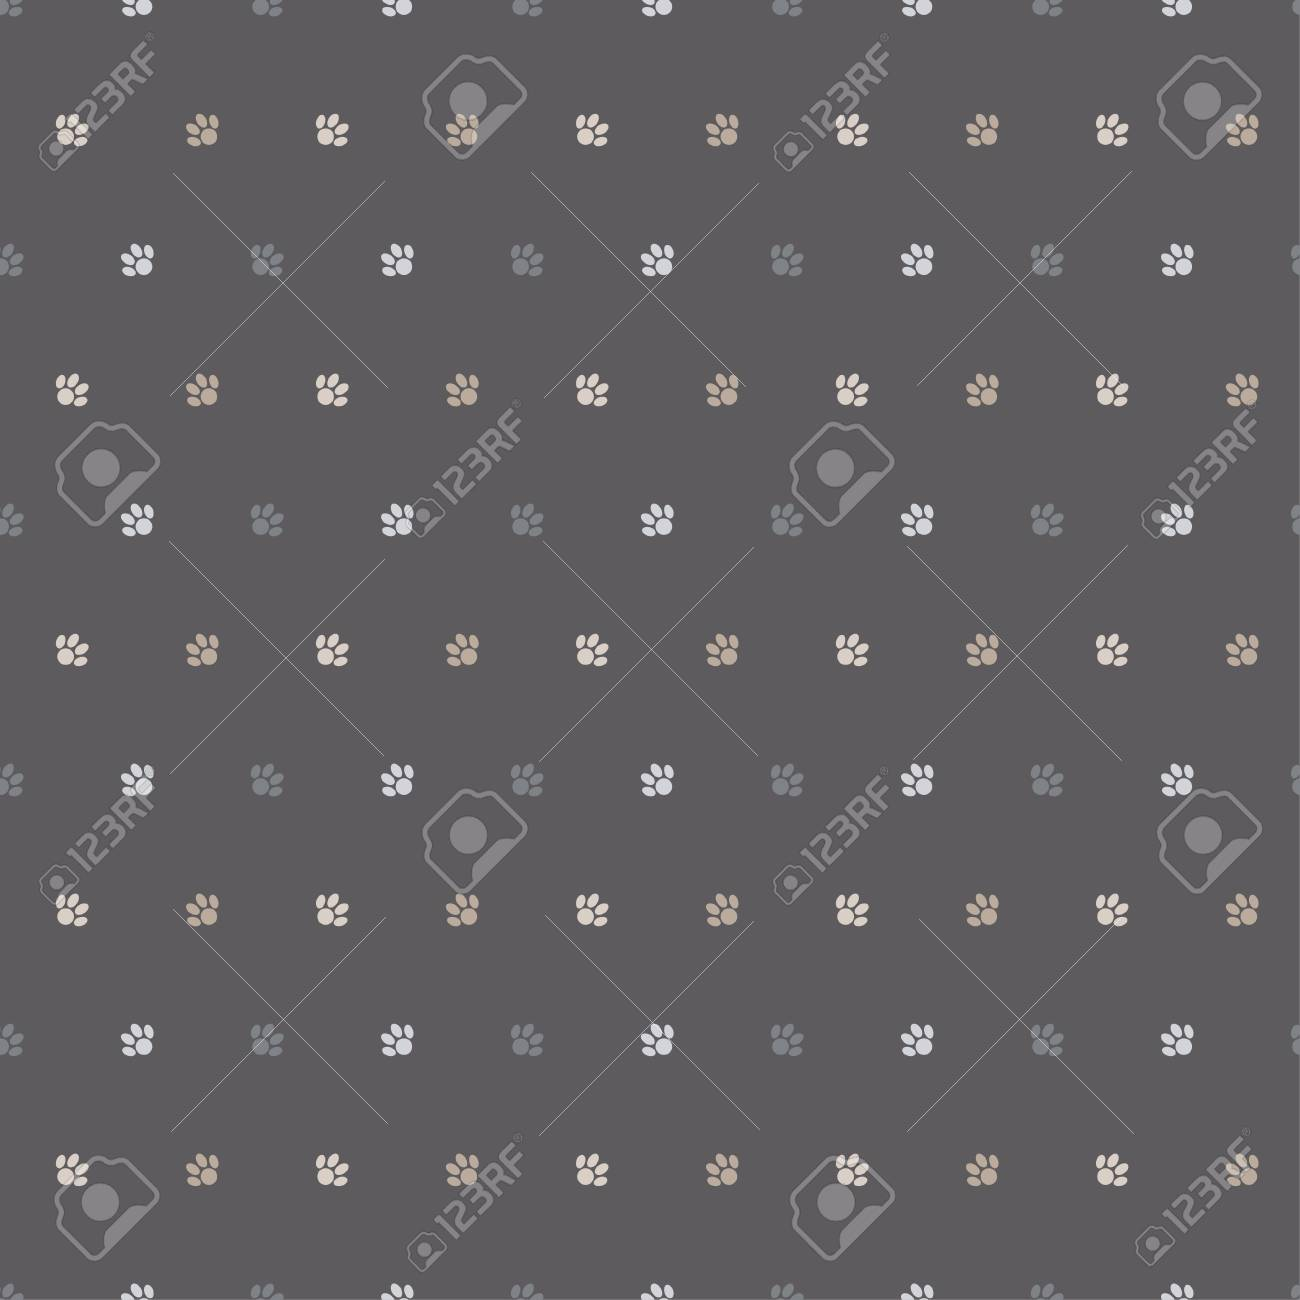 Seamless Vector Background With Cat Paws Print Repeating Cloth Design Wallpaper